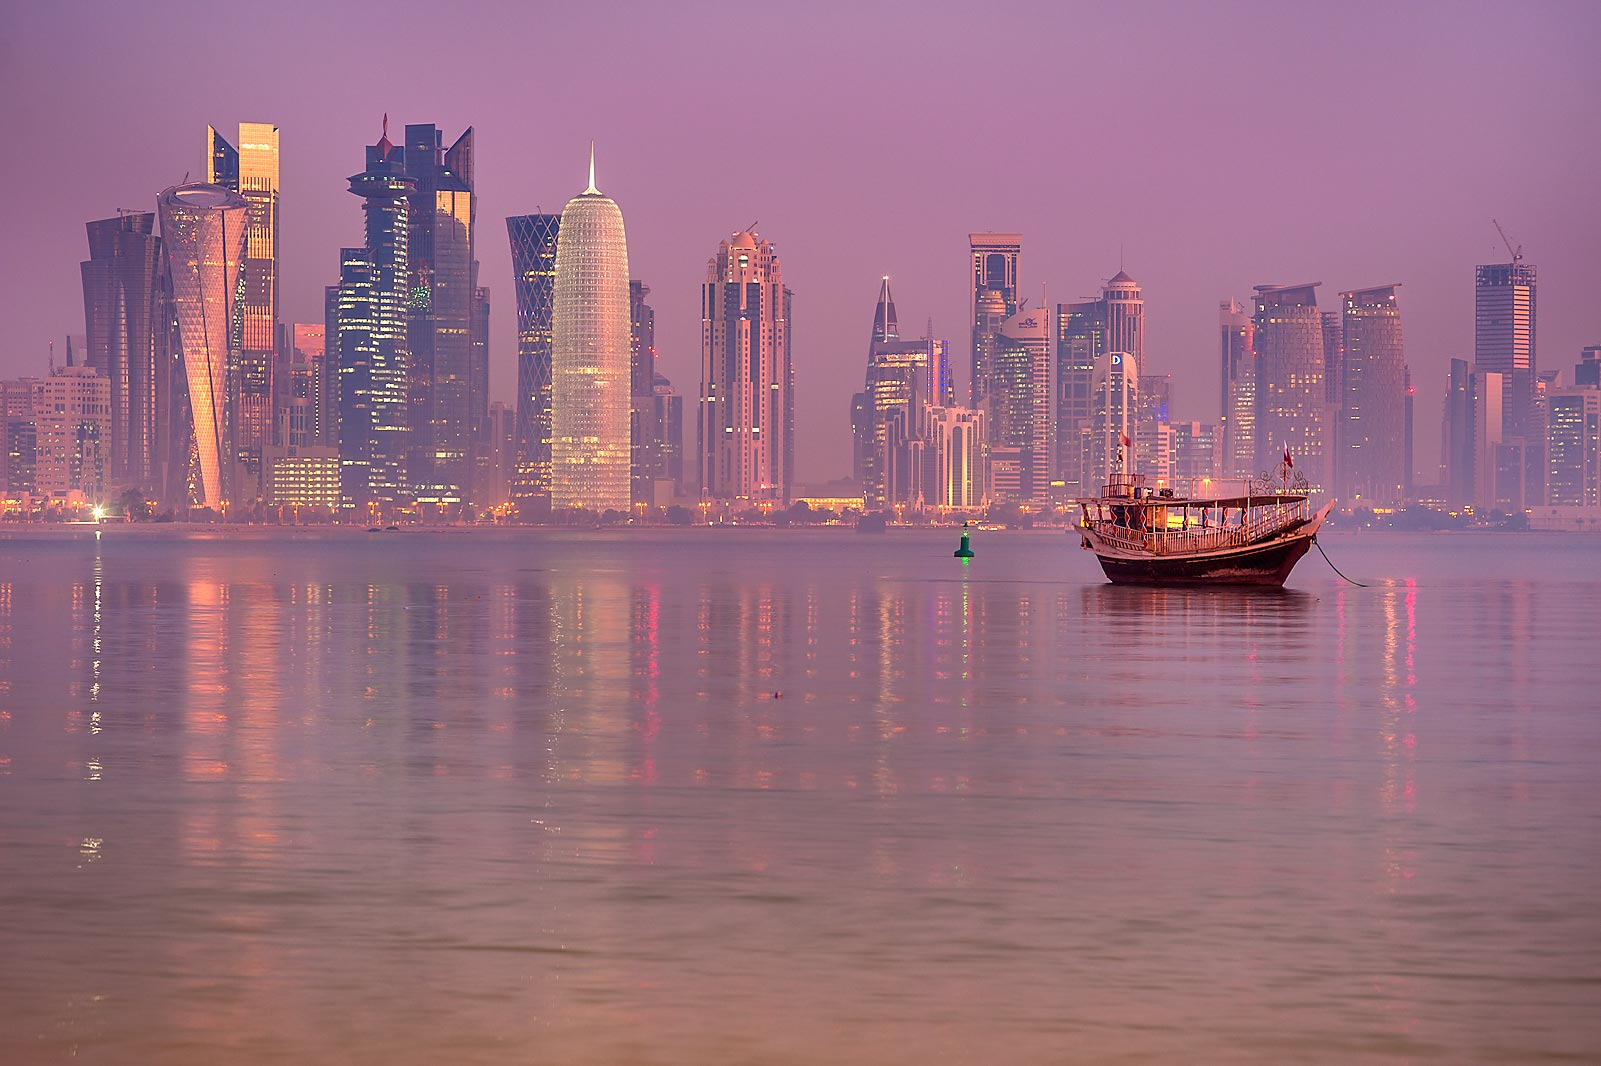 Dhow boat and West Bay in background, view from Corniche promenade. Doha, Qatar